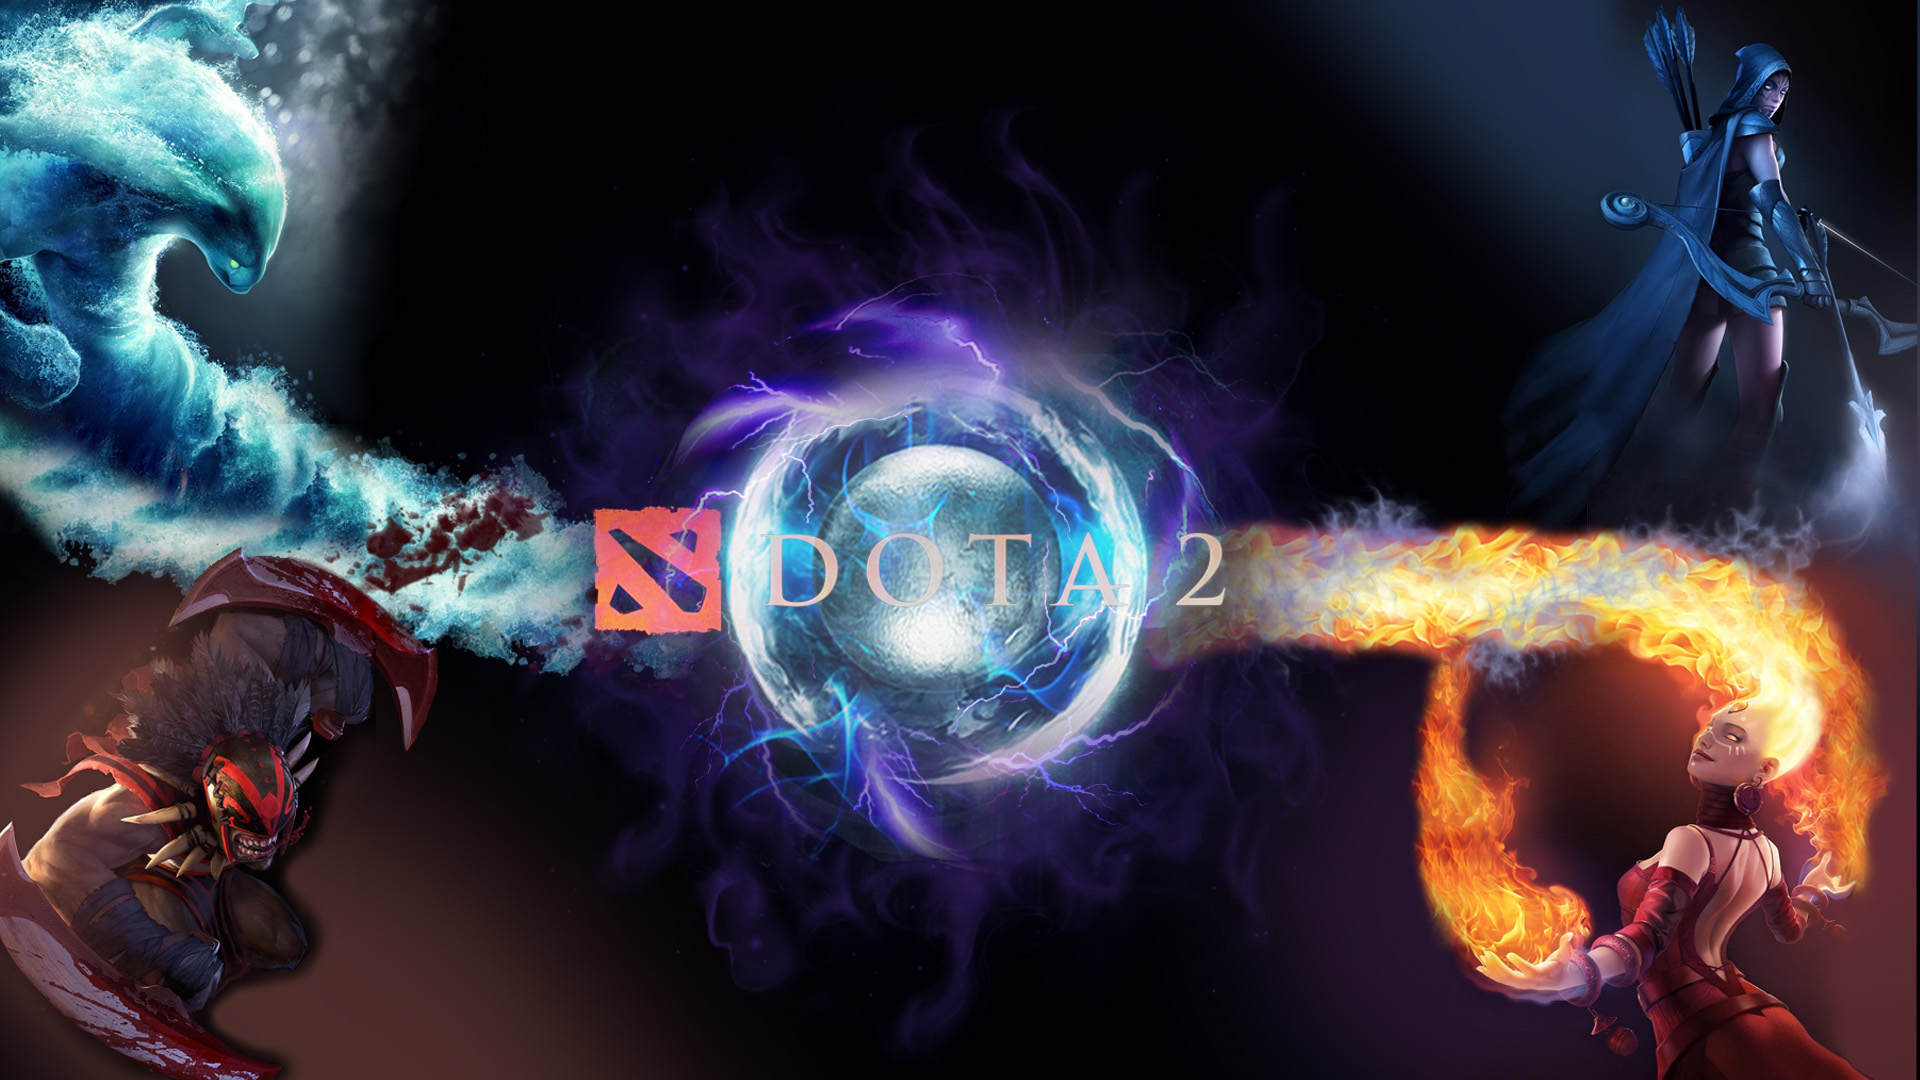 Dota 2 Wallpaper HD Backgrounds